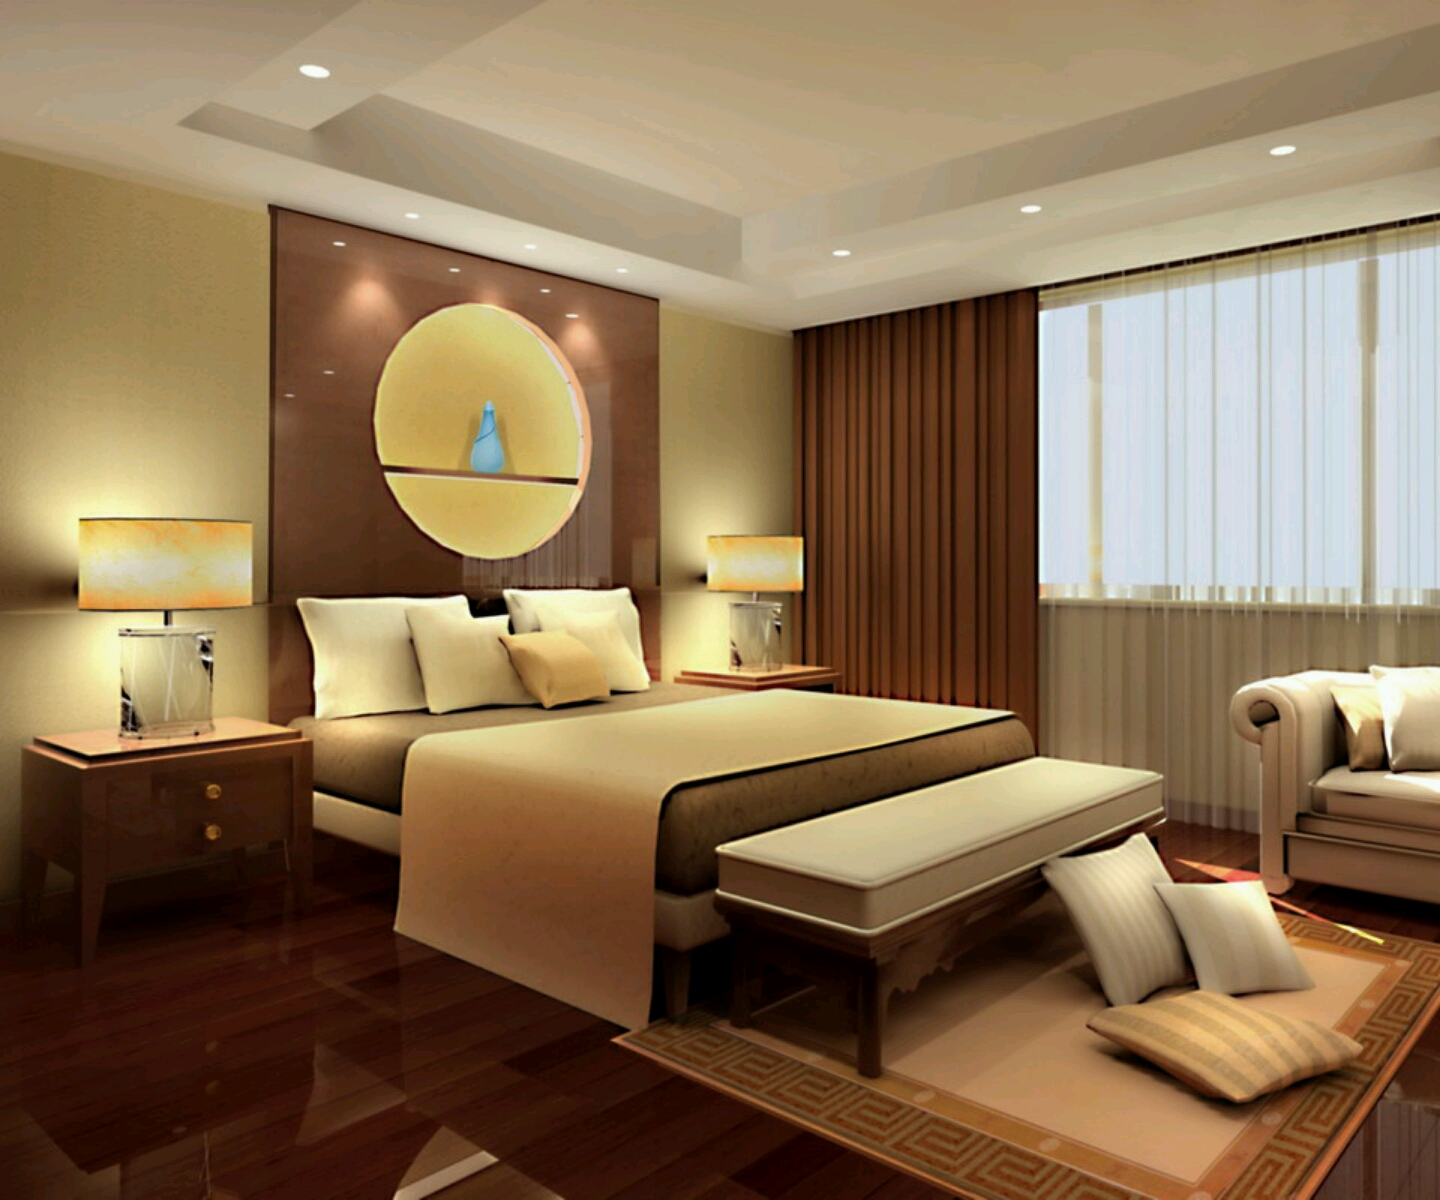 Interior Design For Bedroom New Home Designs Latest Modern Beautiful Bedrooms